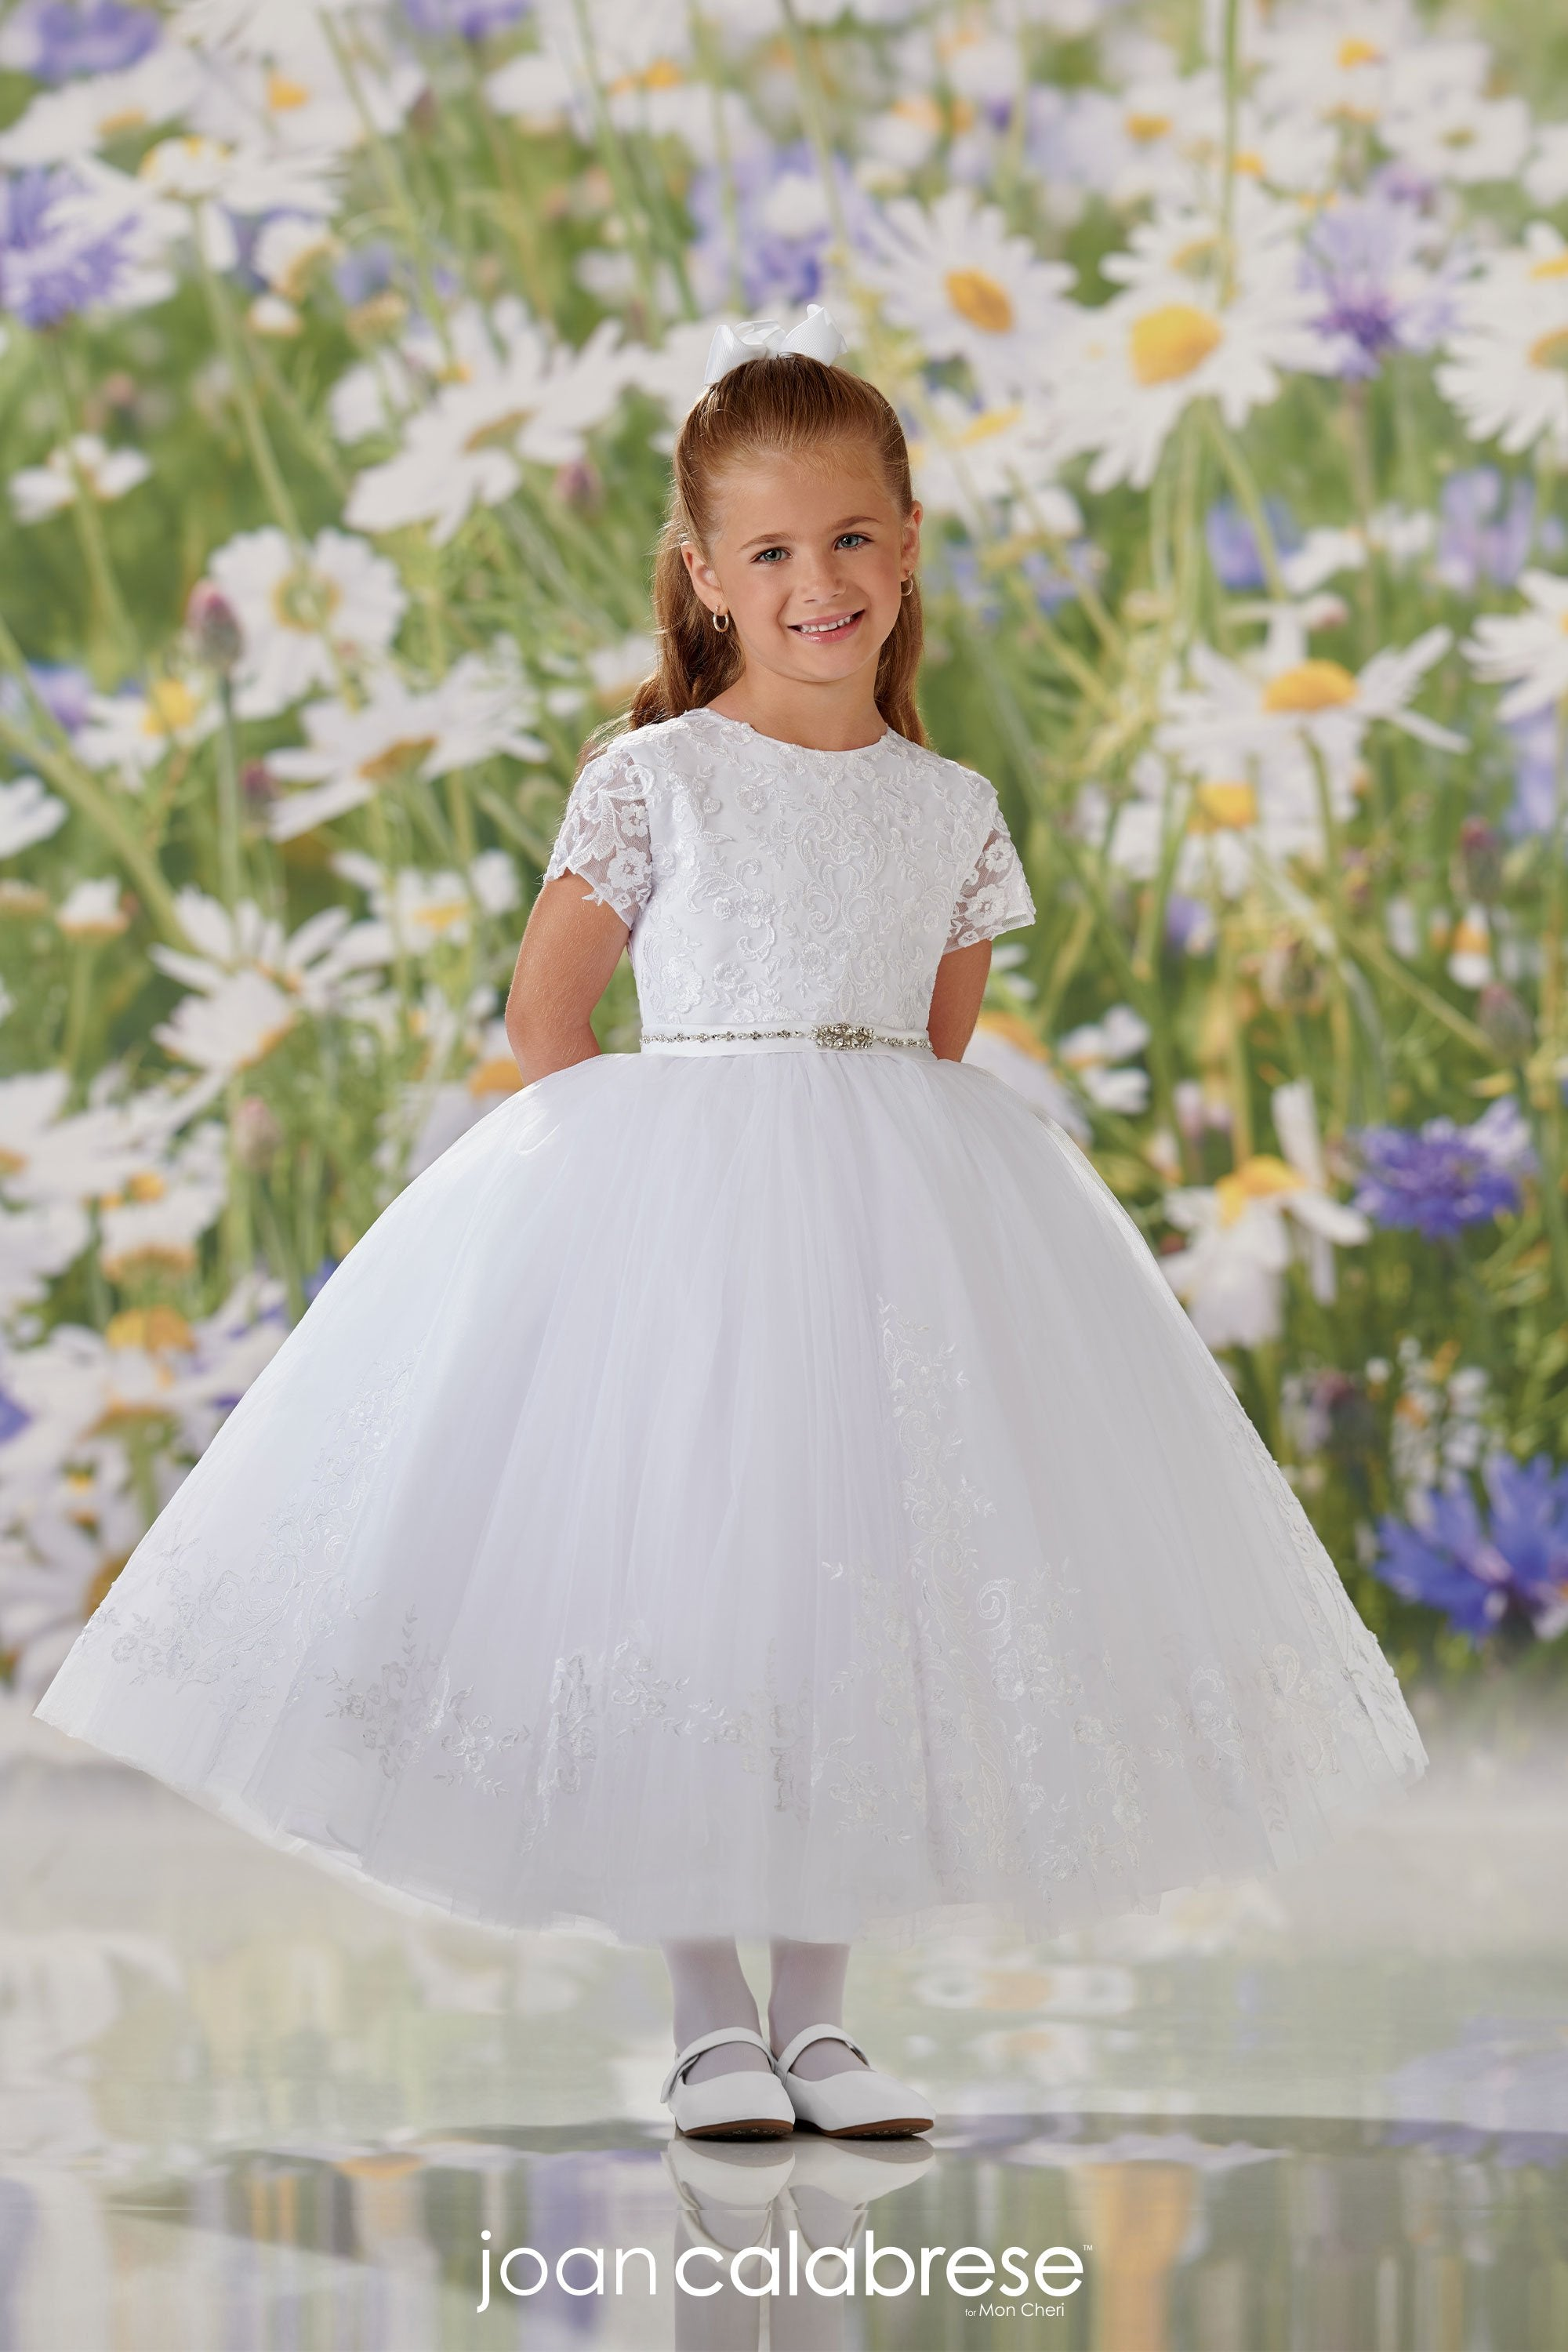 Joan Calabrese For Mon Cheri Communion Dress 120337 - Nenes Lullaby Boutique Inc